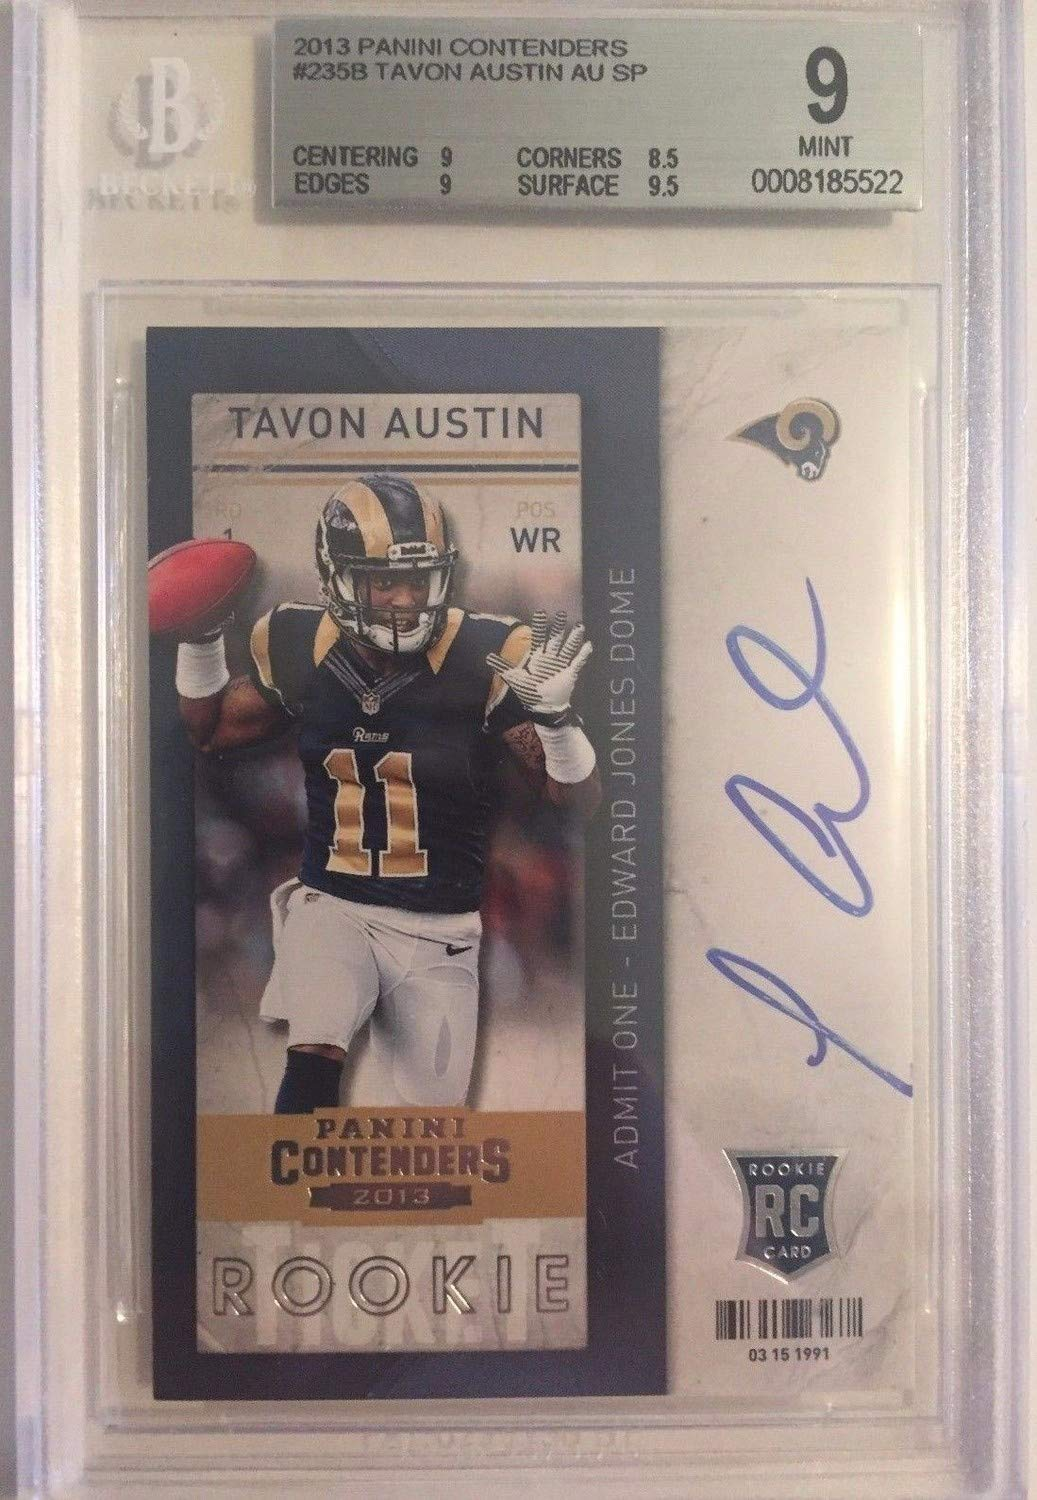 Tavon Austin Autographed Signed 2013 Panini Contenders Rookie Ticket Autographed Signed #235 Rc Bgs 9 Mint Certified Authentic